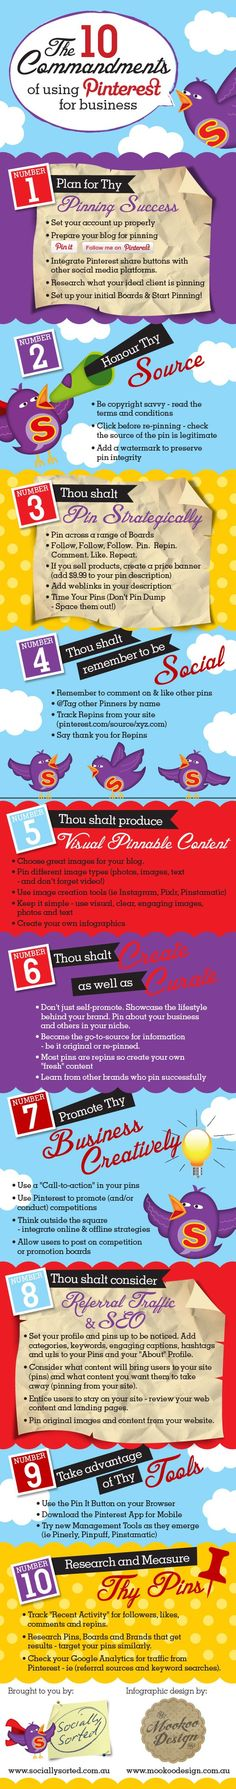 10 commandments of using Pinterest for business